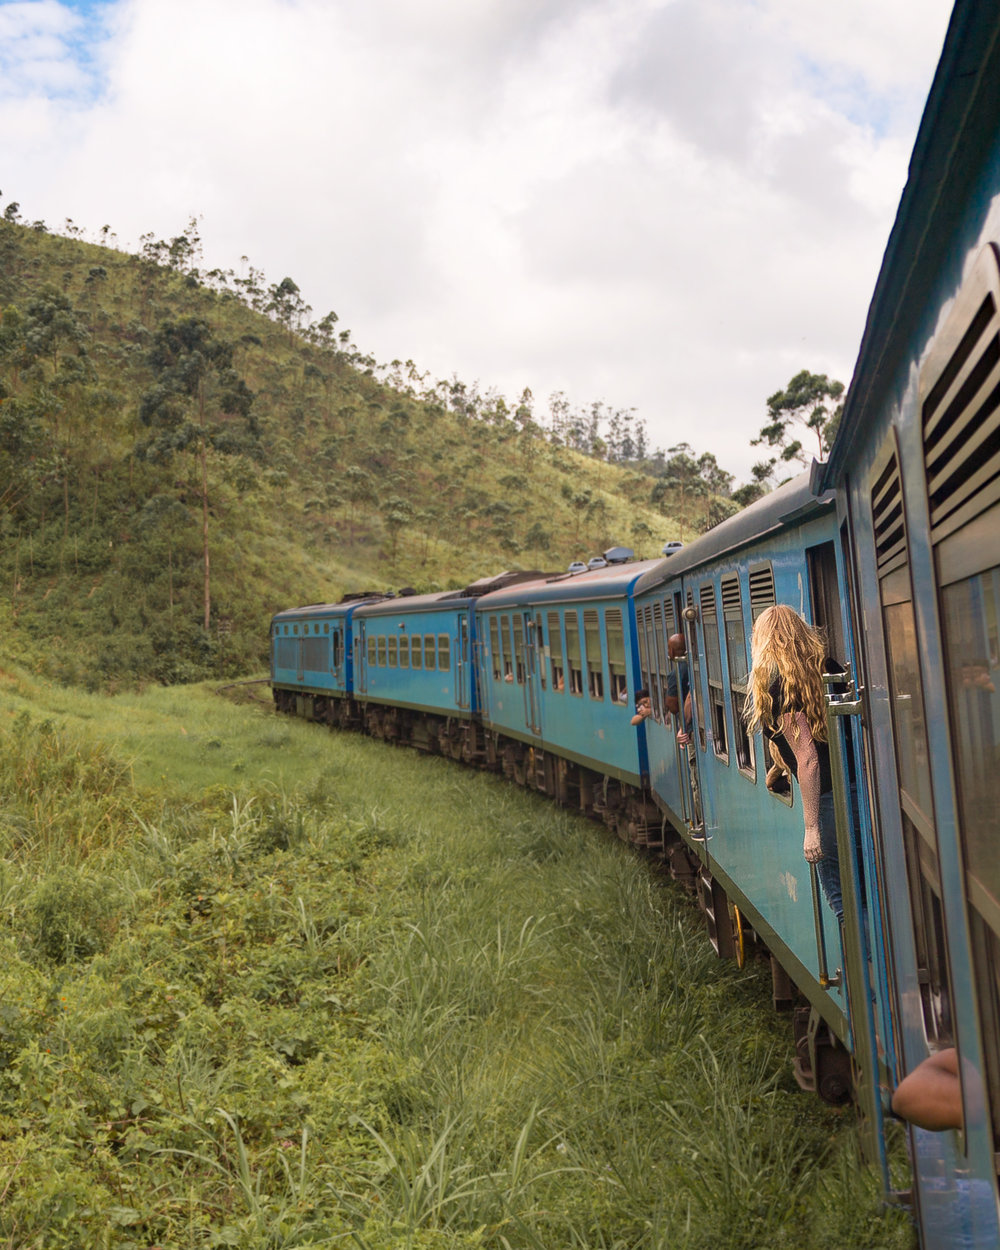 Sri Lanka Itinerary 2 weeks: Kandy to Ella Train